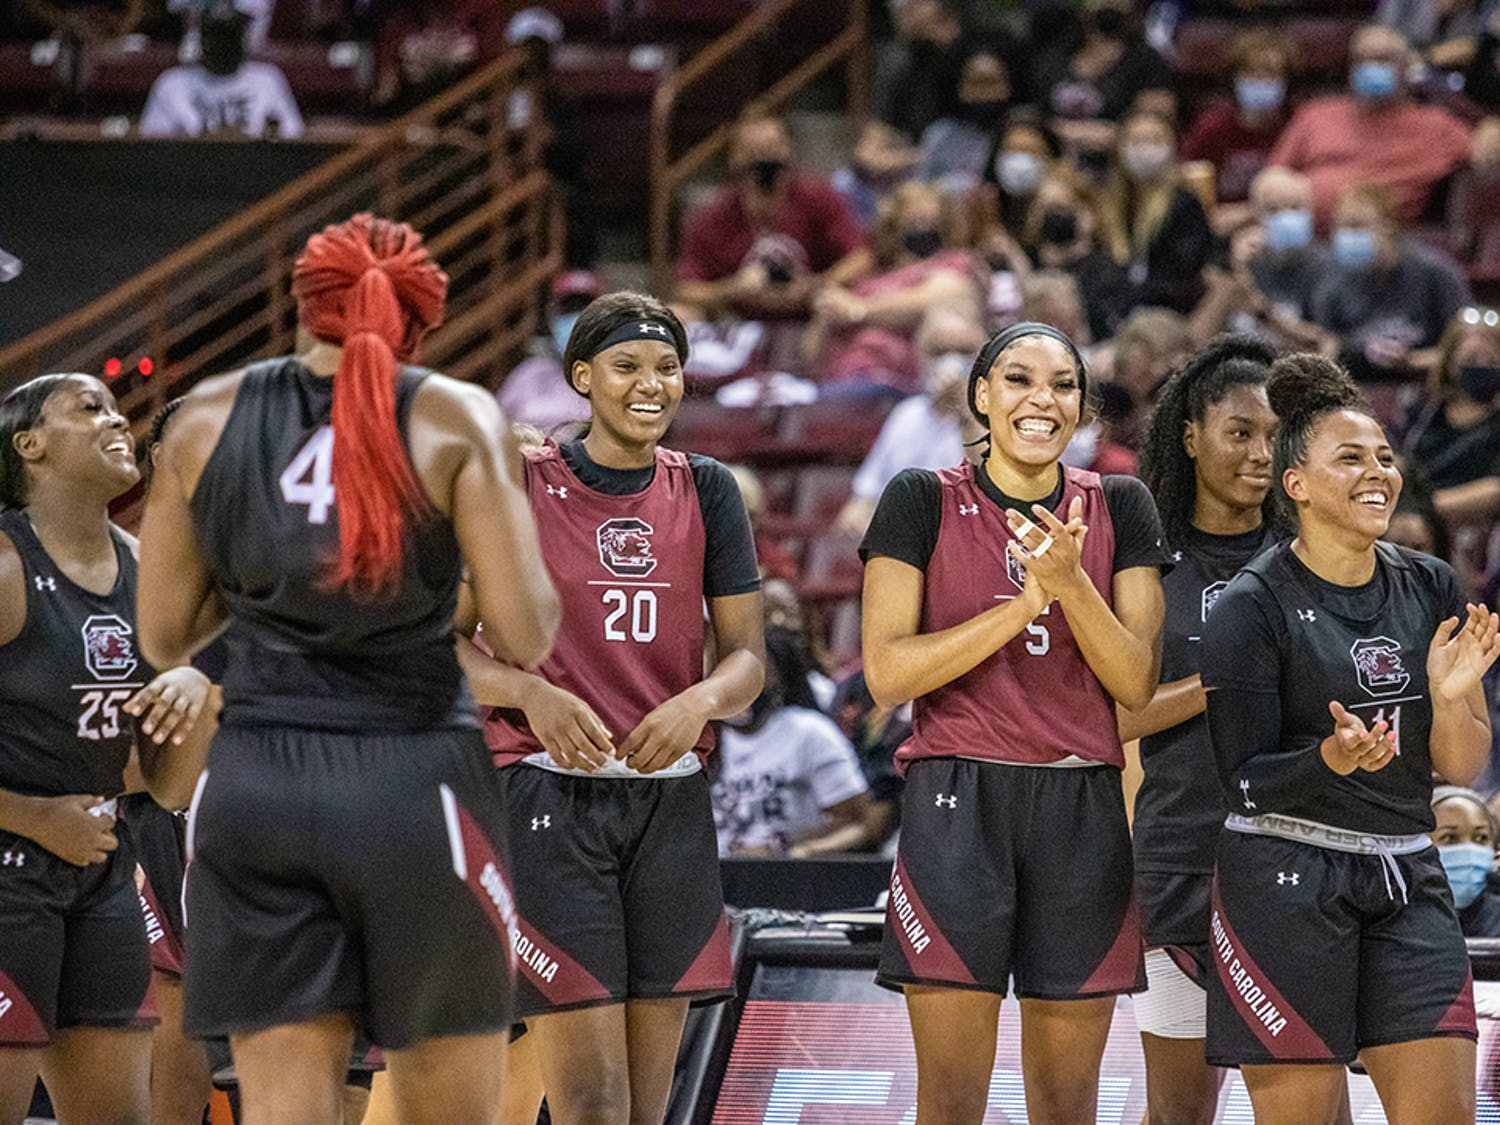 The Garnet and Black teams get ready to face off in the open scrimmage Oct. 1, 2021, before the start of the women's basketball season. The Black team won with a score of 22-18.